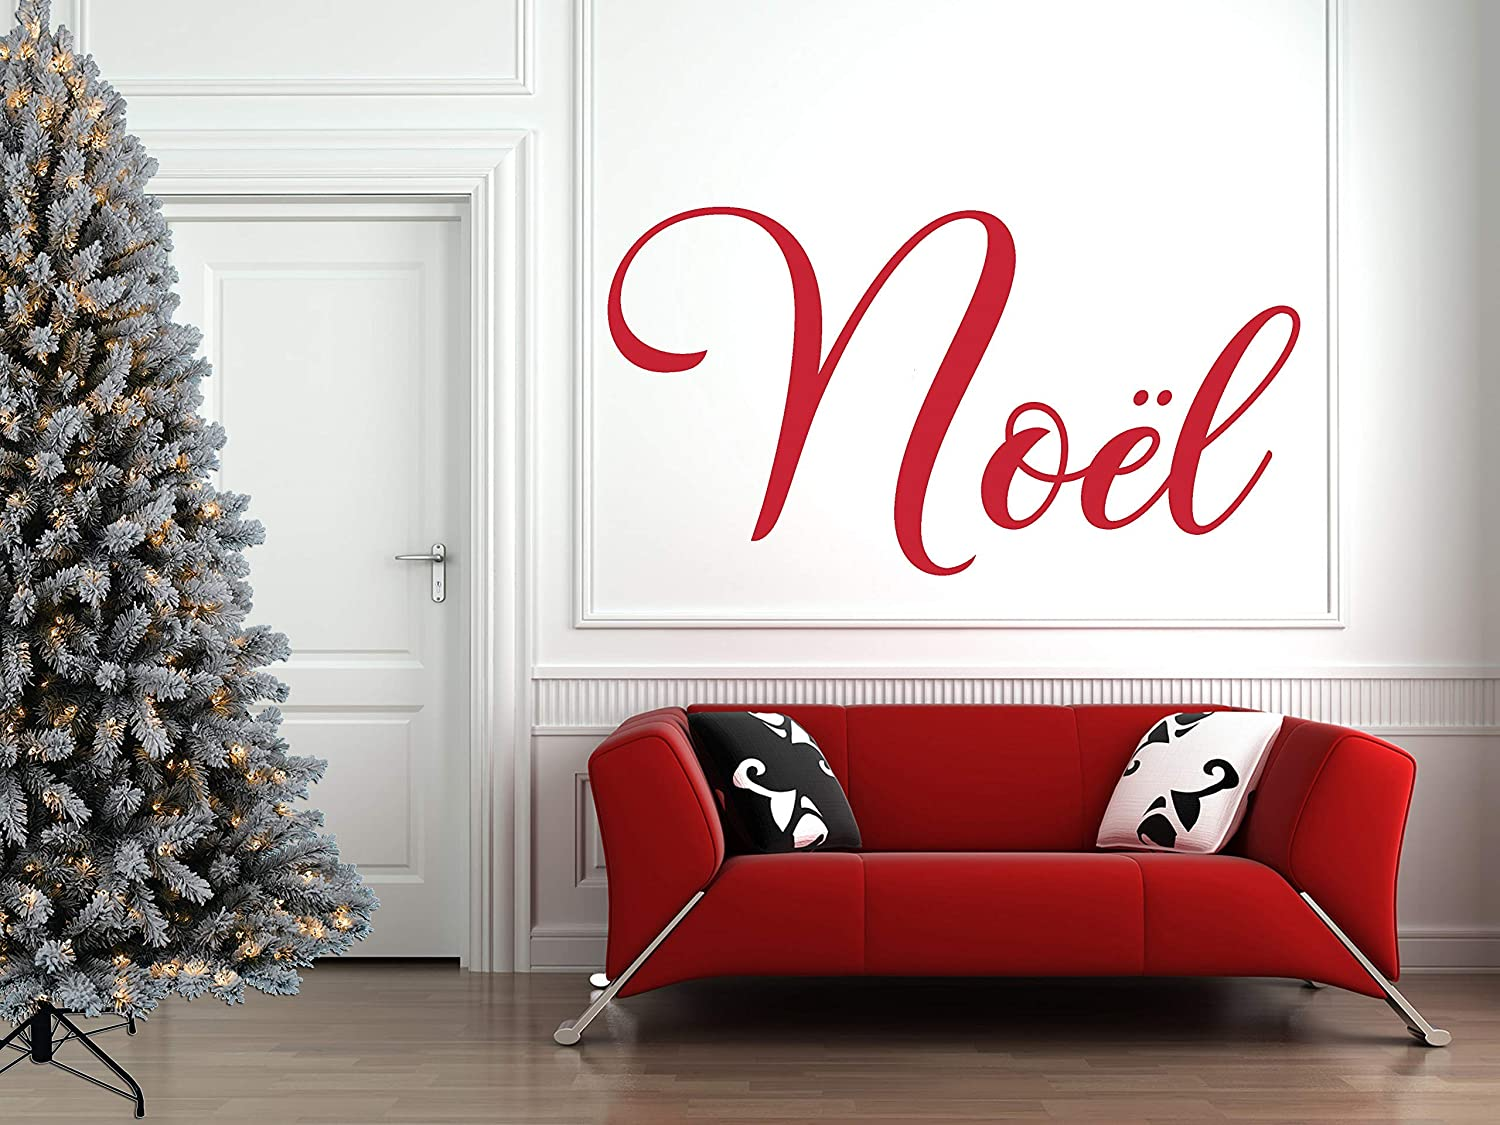 Family Room Decor or Home Decoration Christmas Wall Decal Noel Holiday Vinyl Stickers for Living Room